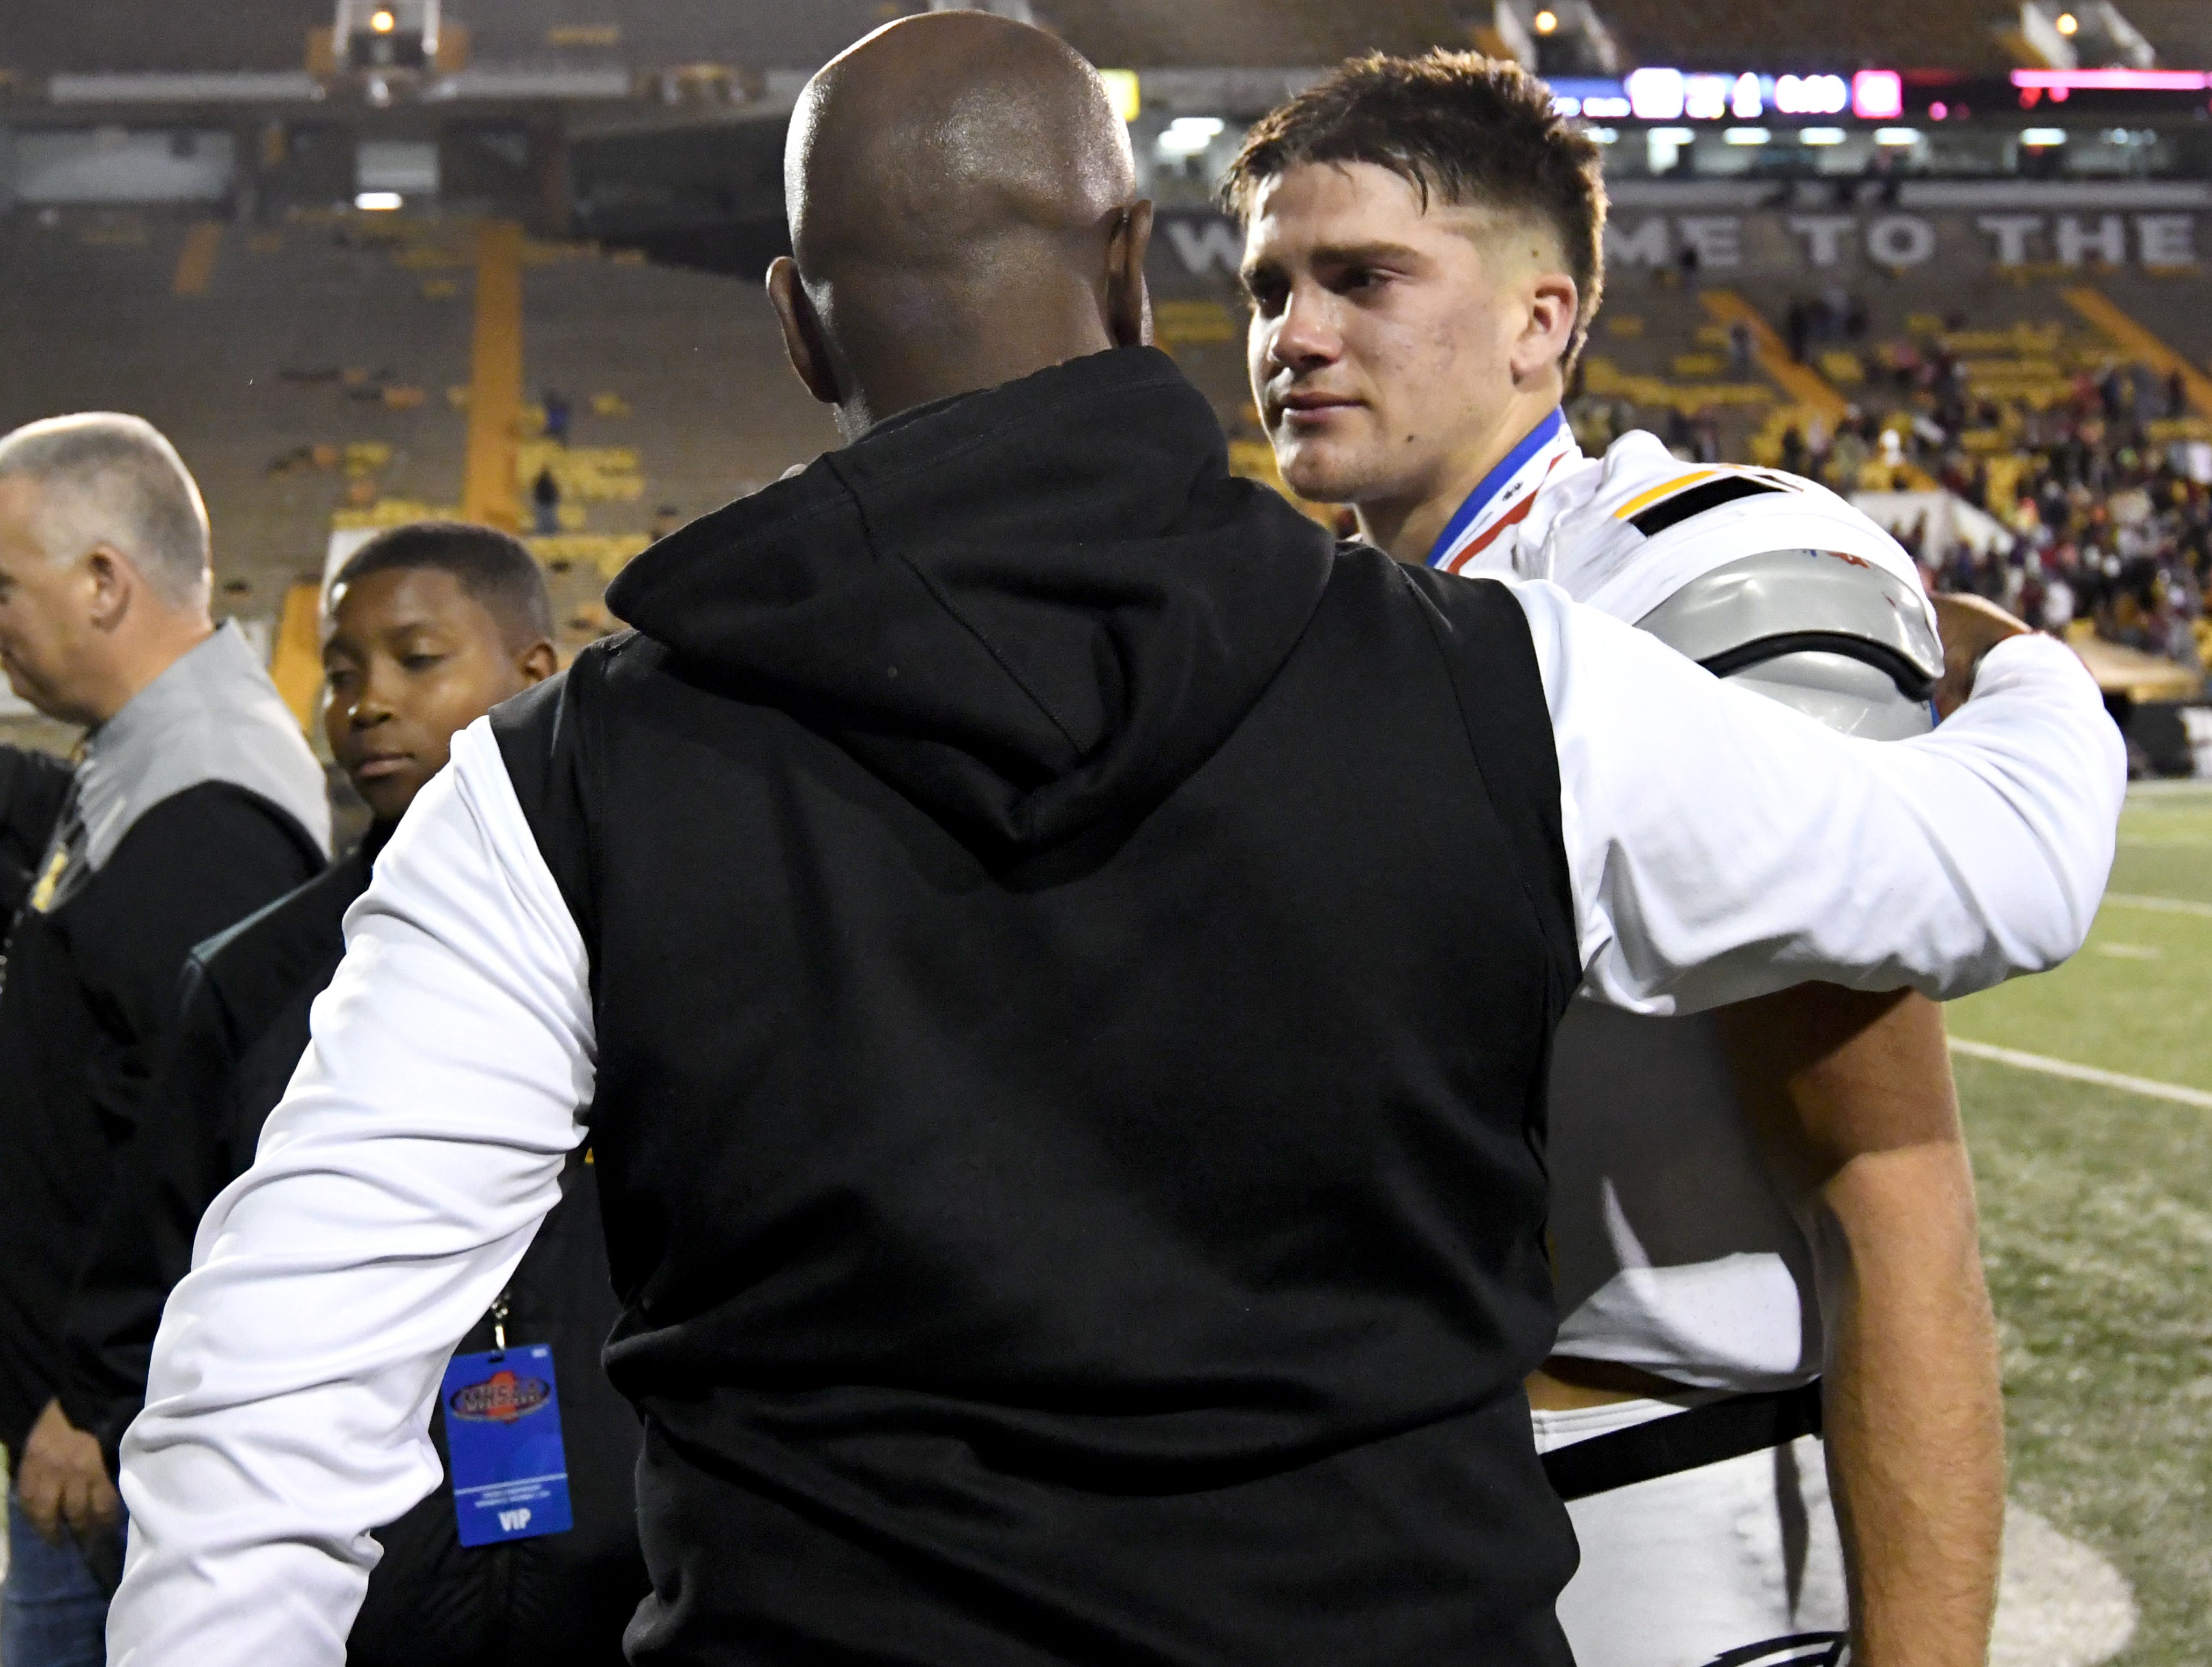 Oak Grove quarterback John Rhys Plumlee is comforted by Hattiesburg head coach Tony Vance after losing to Horn Lake in the 6A state championship game at M.M. Roberts Stadium in Hattiesburg on Friday, November 30, 2018.